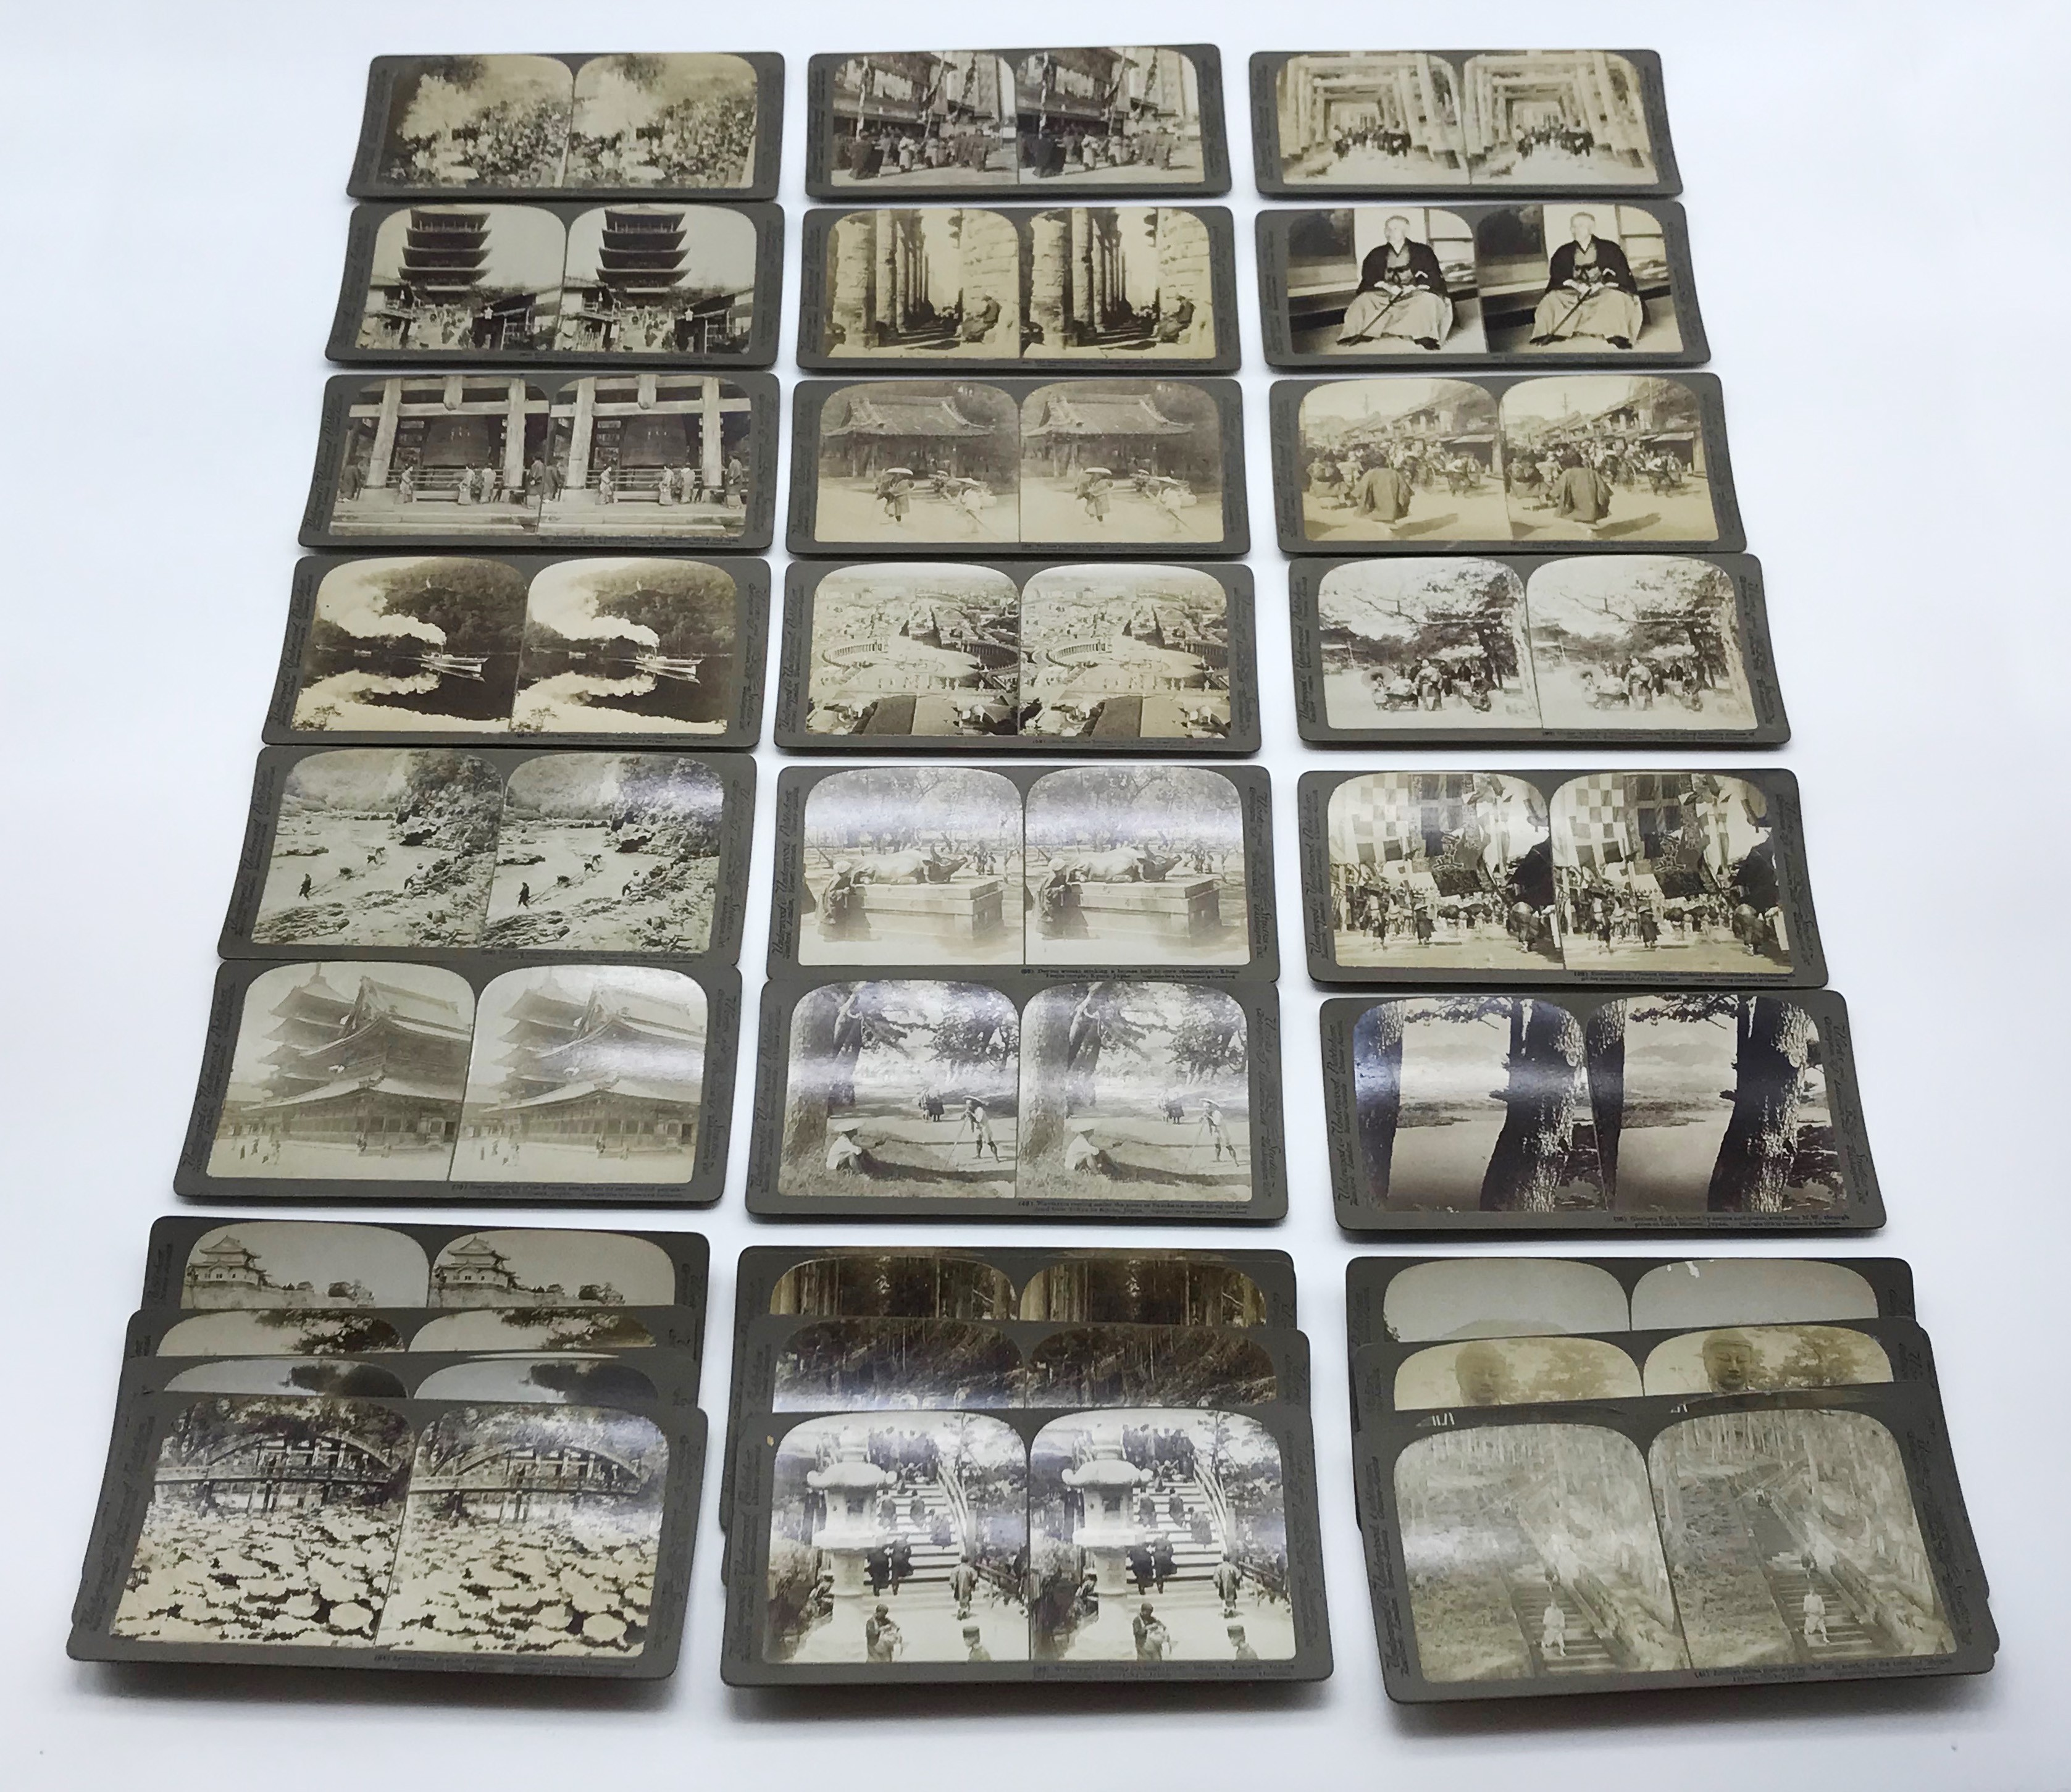 Lot 55 - SELECTION OF JAPANESE RELATED STEREO-VIEWS CARDS